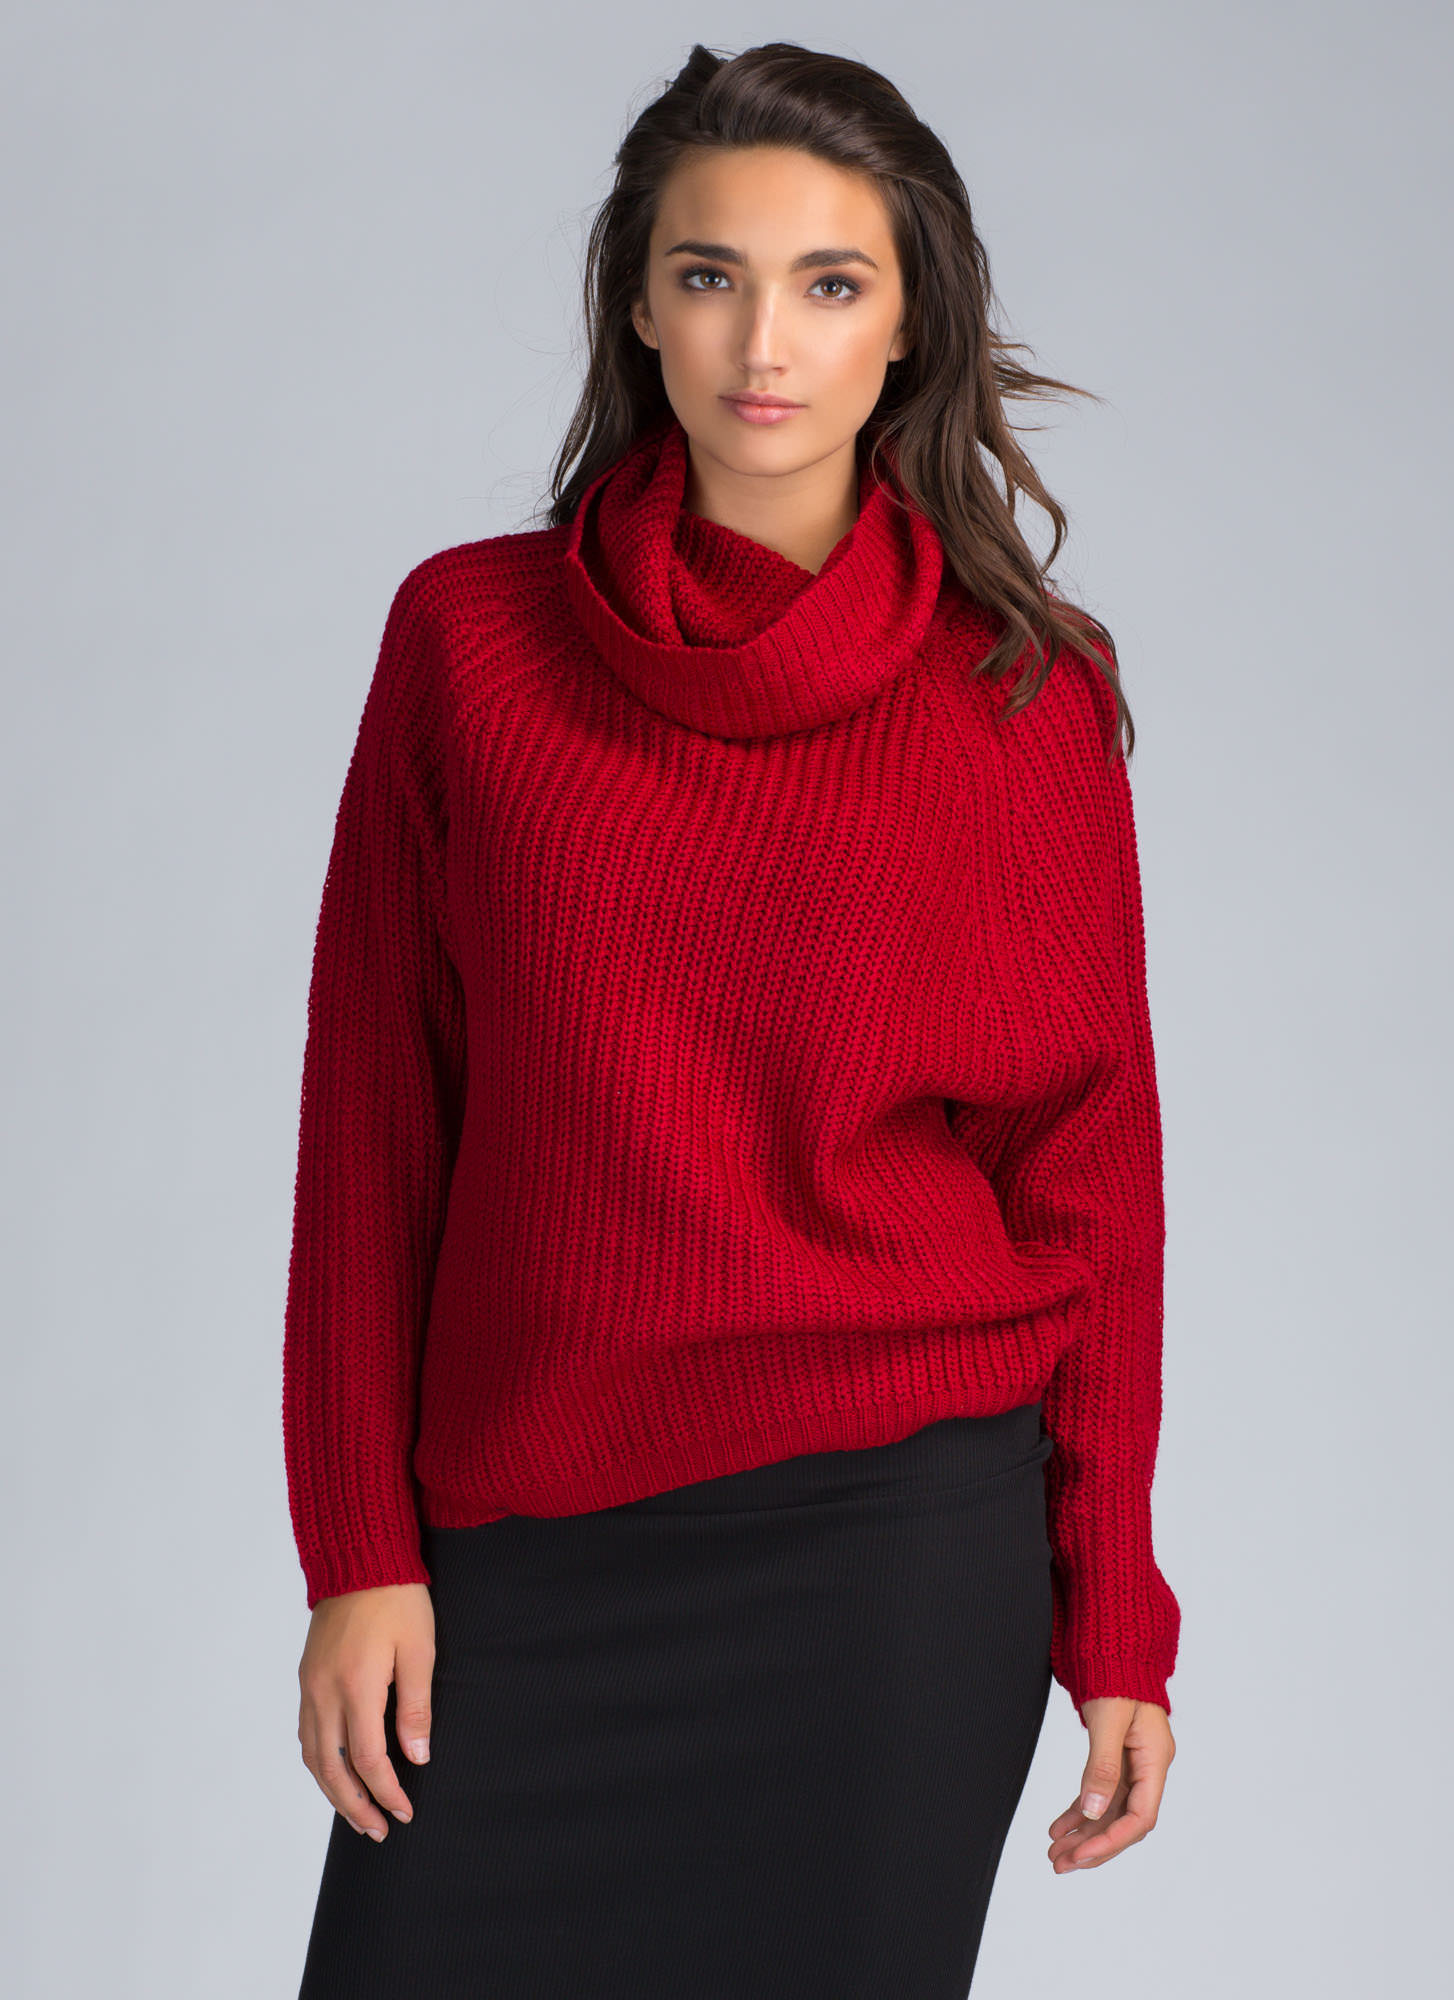 Knit Me Baby Cowl Neck Sweater RED